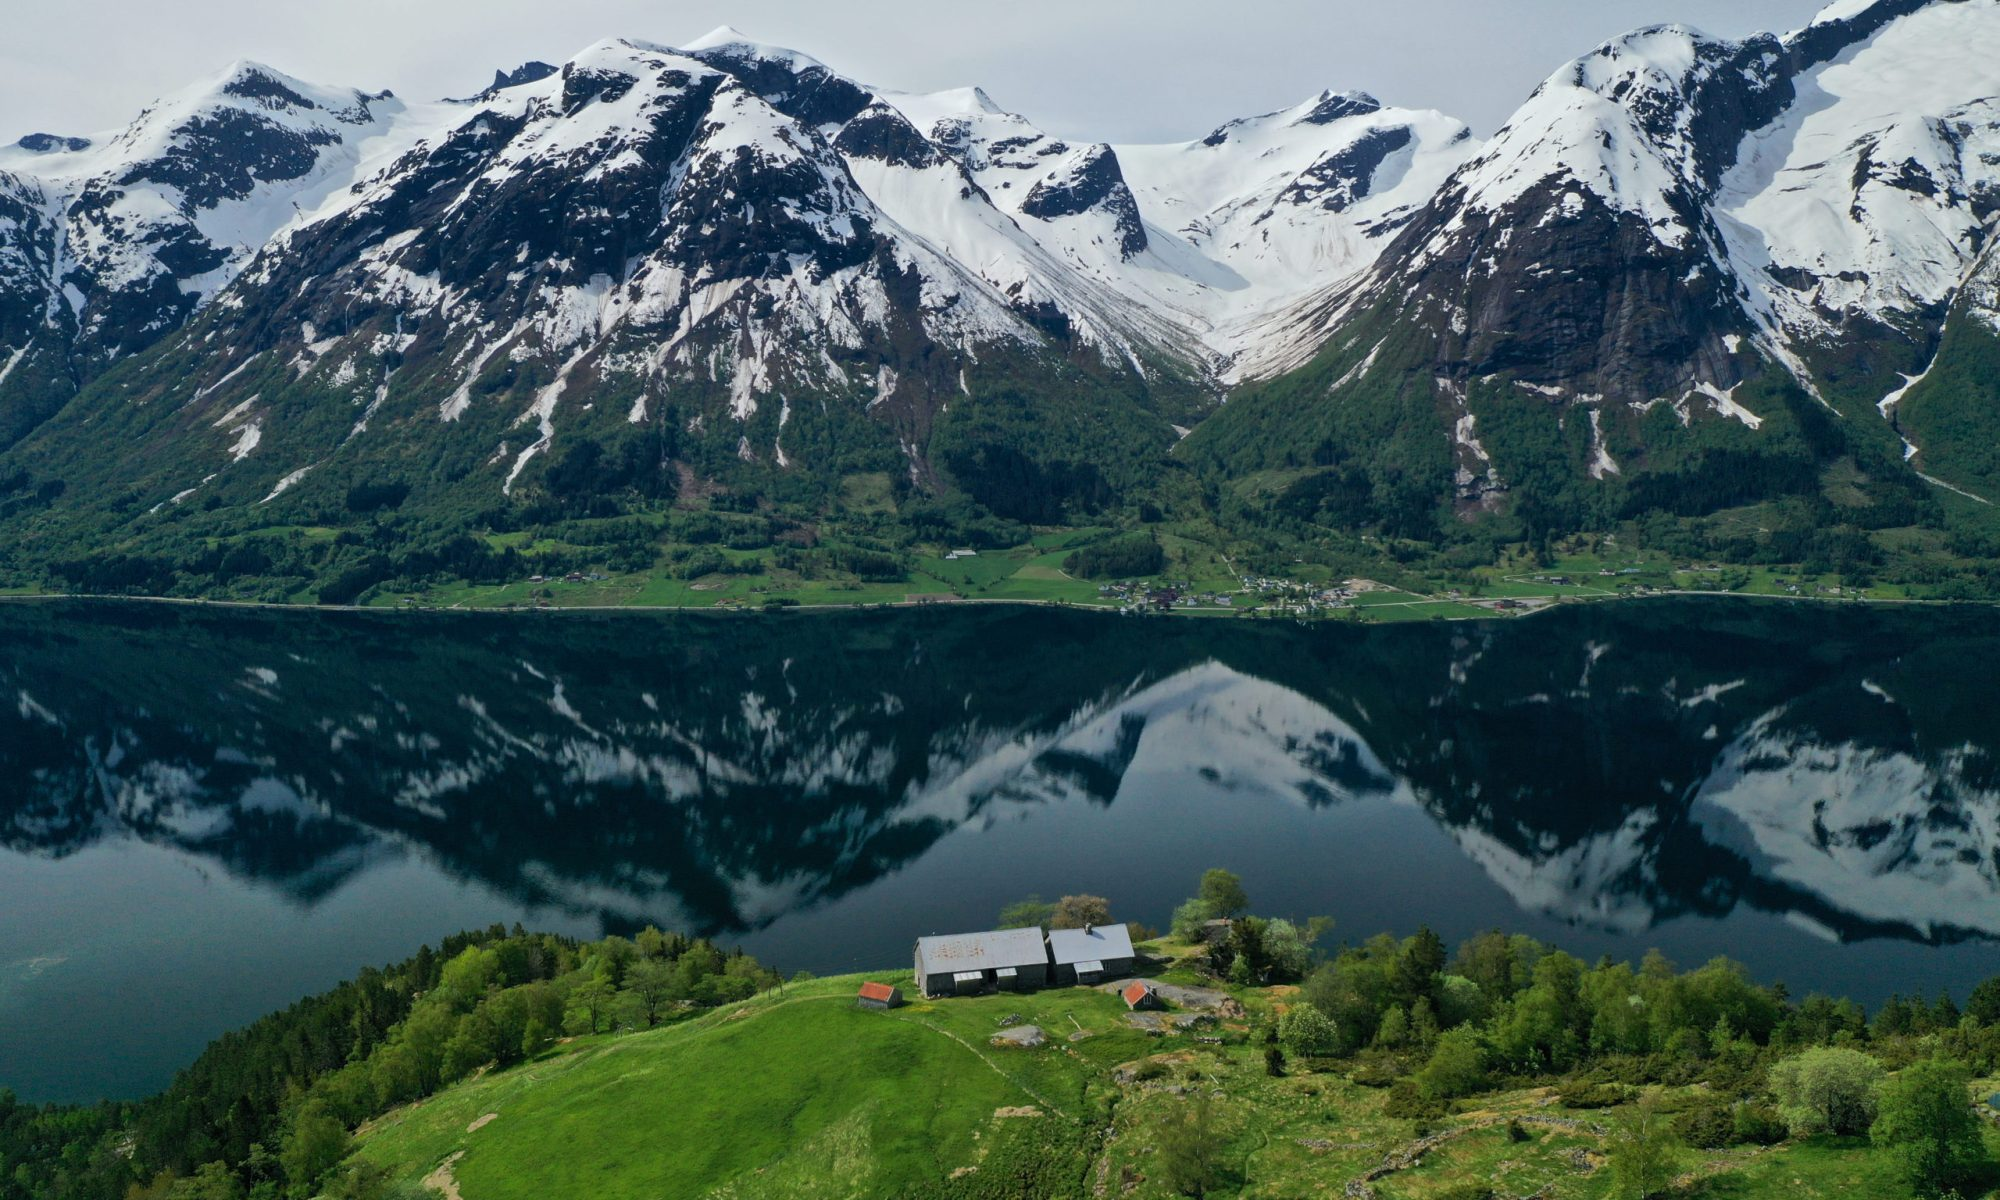 FJORDS NORWAY - Hike to Segestad Mountain Farm at Hjelle in Oppstryn